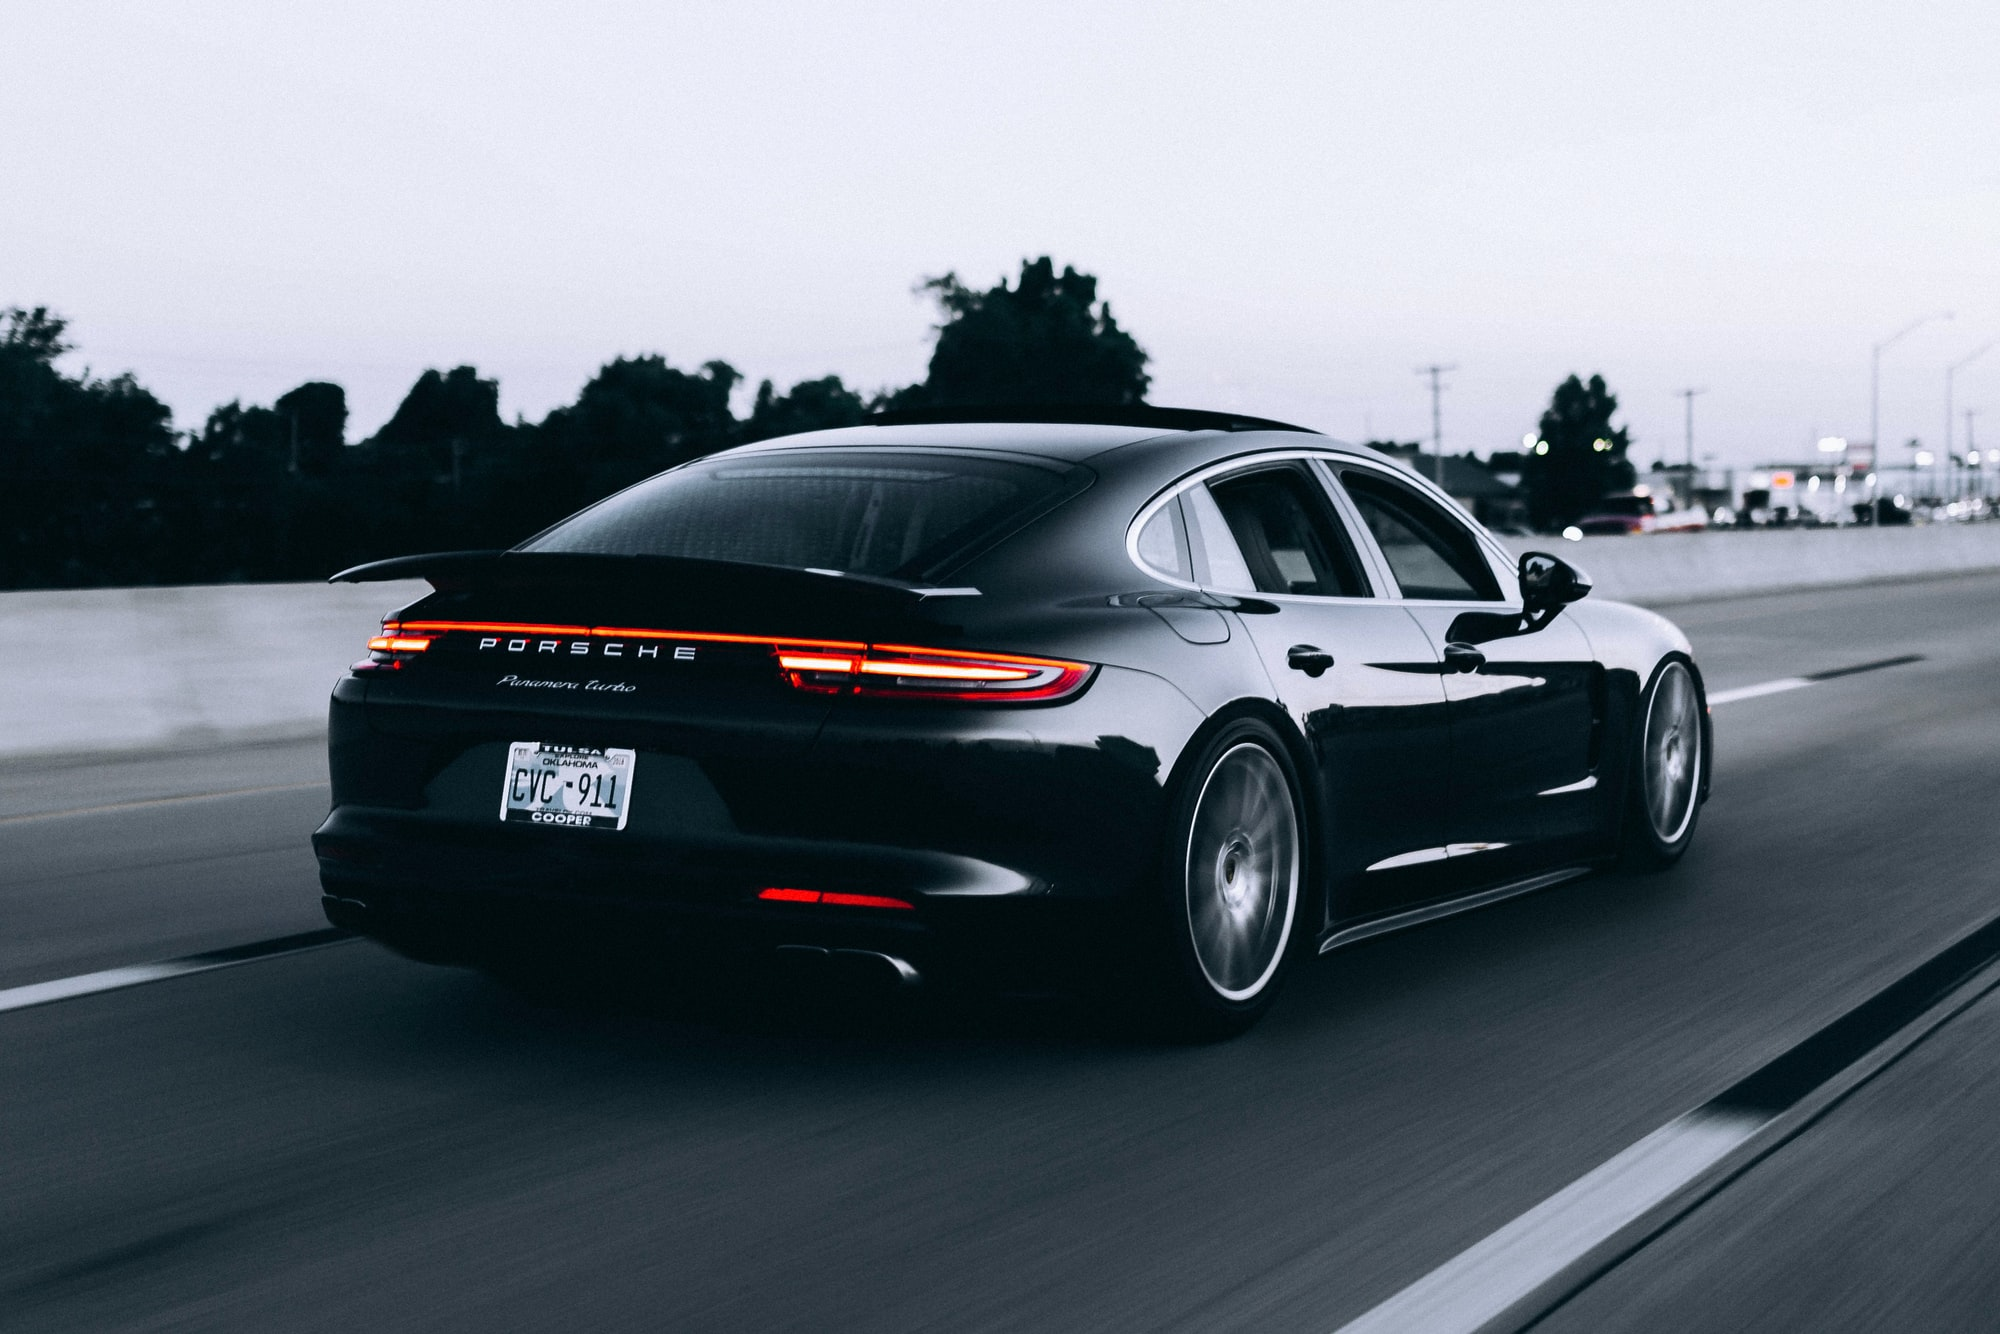 Selling your car in Georgia High Roller Photo by Campbell / Unsplash